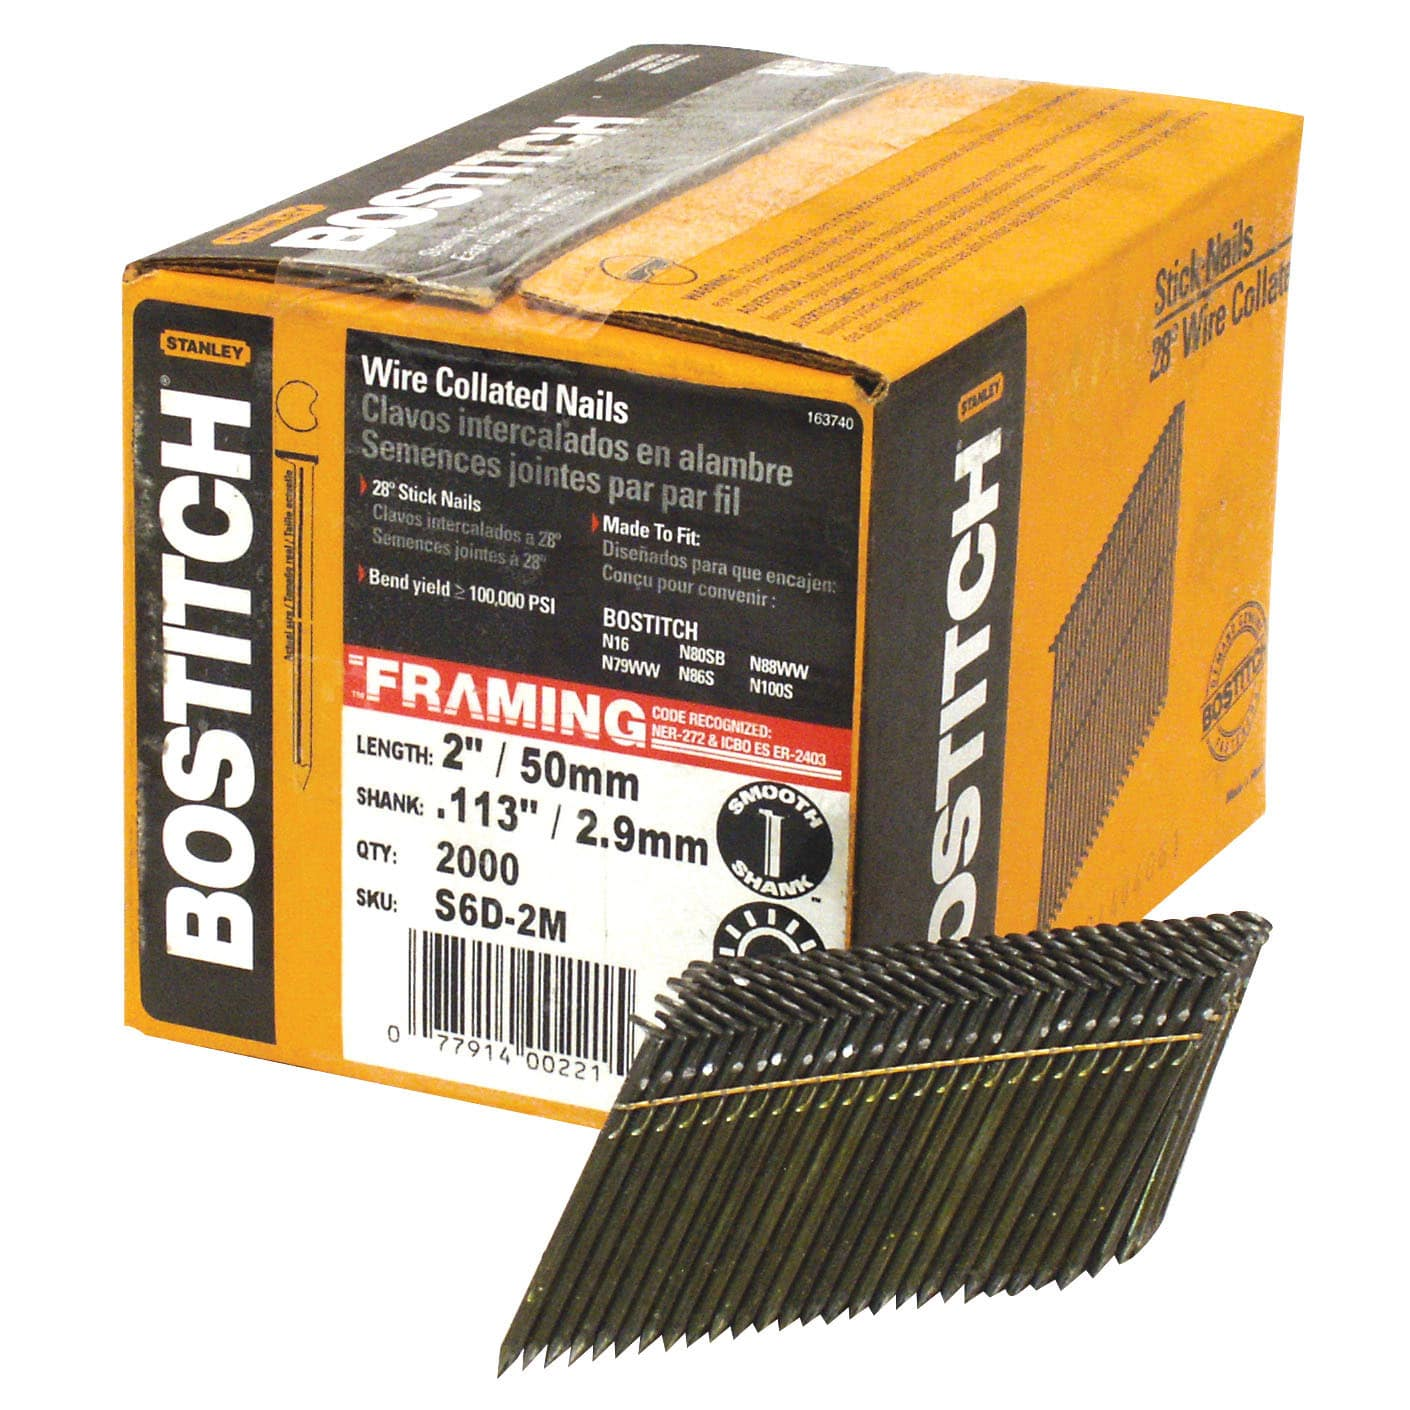 Framing Nail, 2 In,PK2000 BOSTITCH S6D-FH